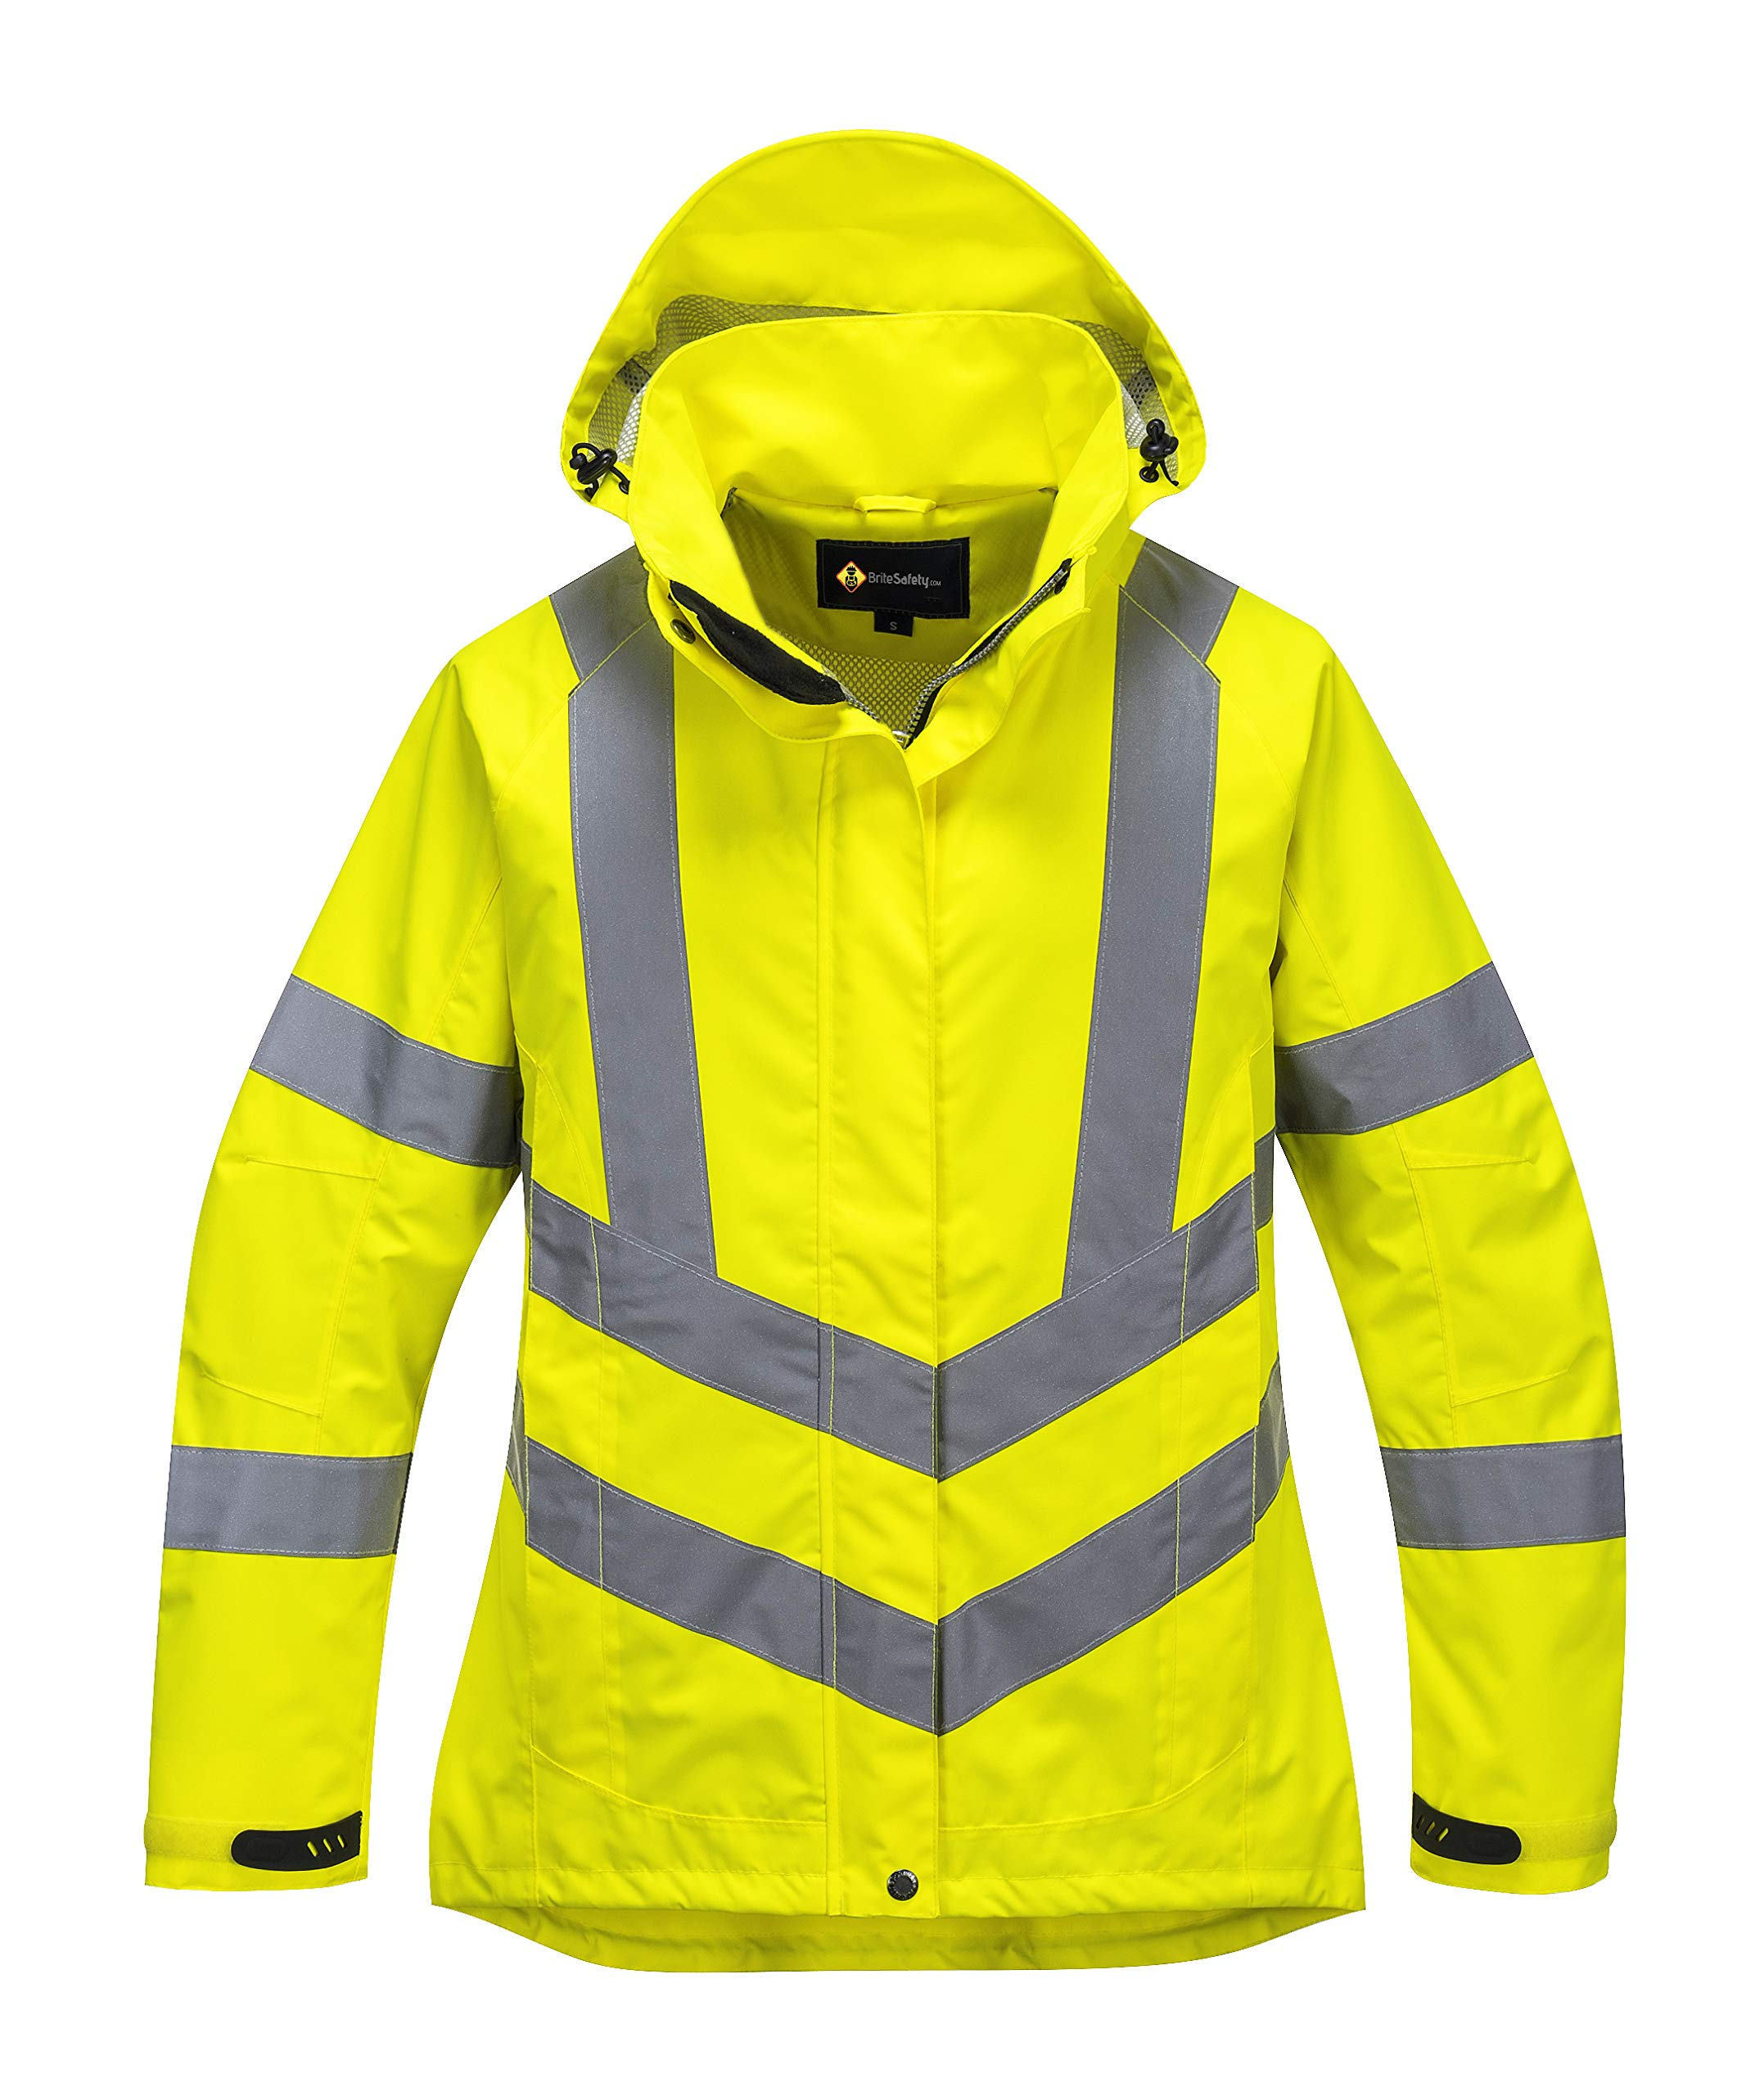 Ladies Hi Vis Breathable Jacket - Lightweight HiViz Rain Jacket for Women - Ansi Class 3, High Visibility, Insulated (Small, HiVis Yellow)